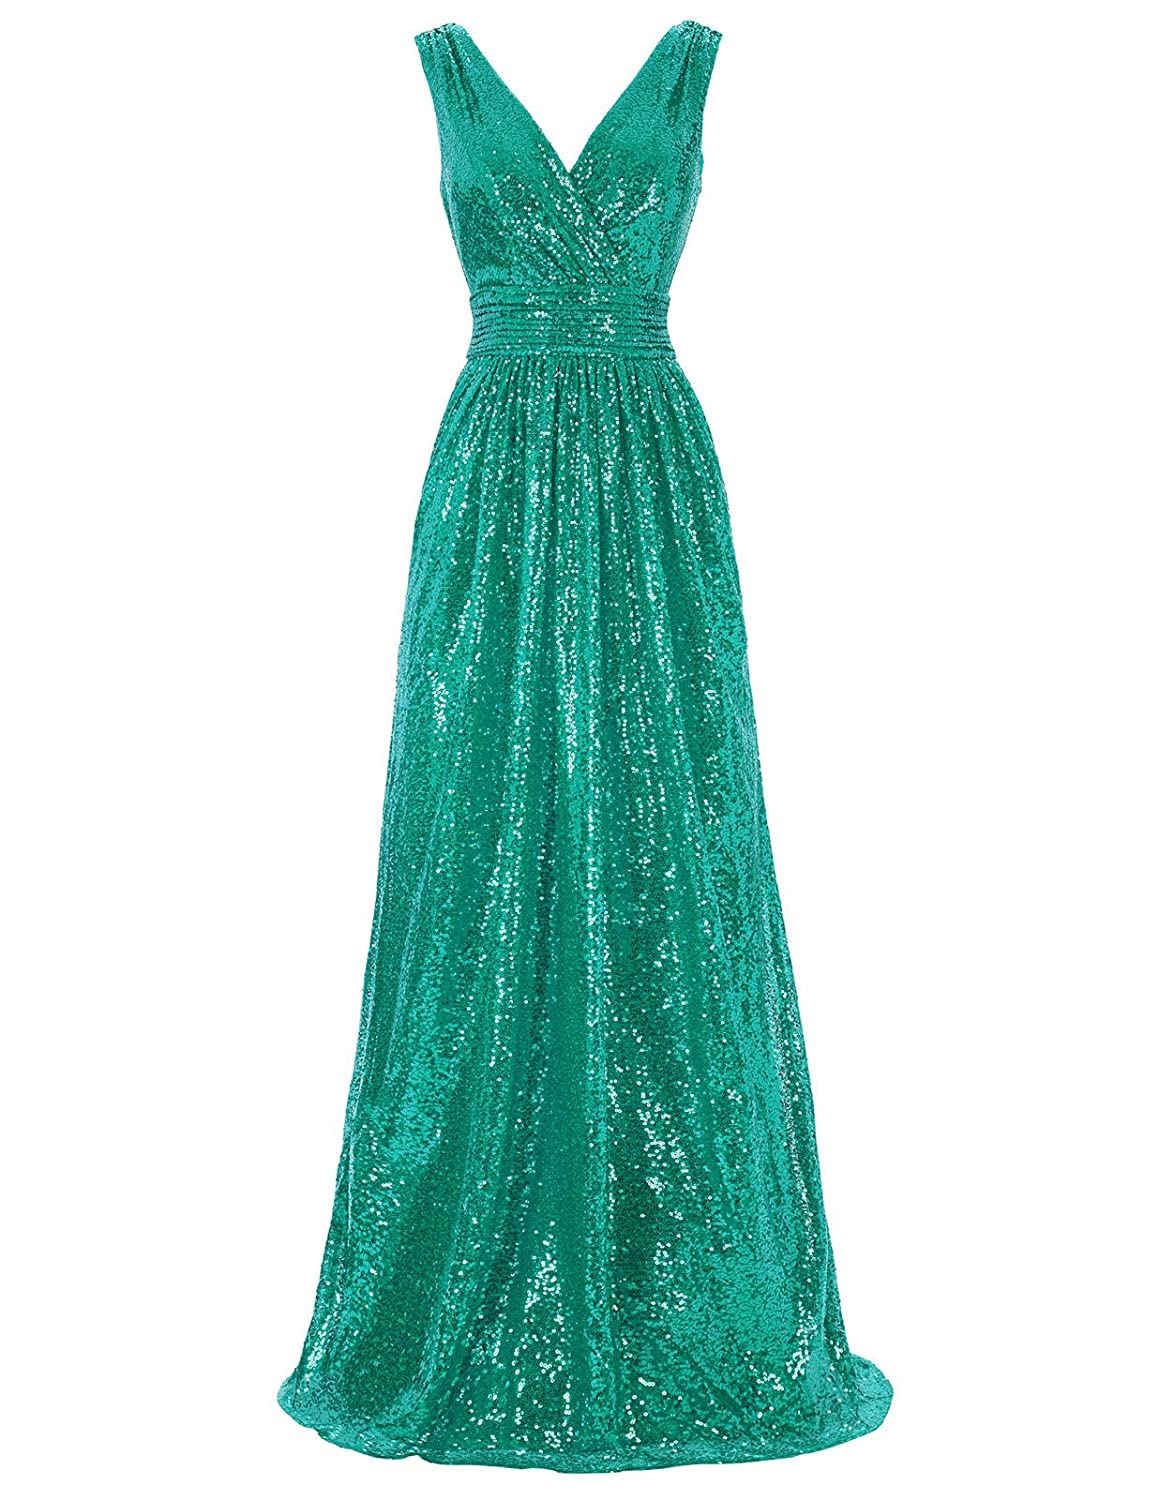 Vintage Evening Dresses and Formal Evening Gowns Kate Kasin Women Sequin Bridesmaid Dress Sleeveless Maxi Evening Prom Dresses $52.99 AT vintagedancer.com